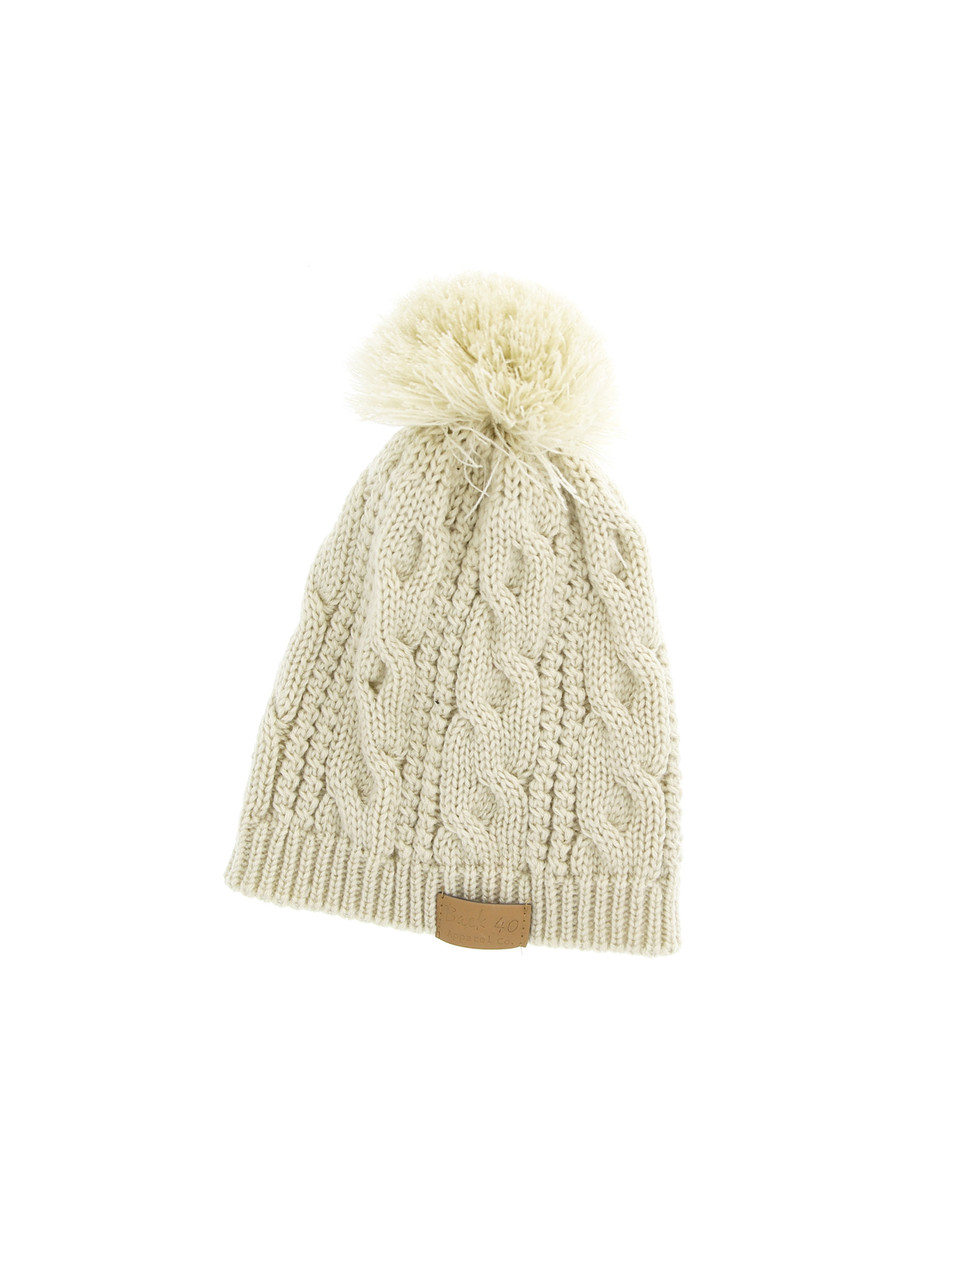 f9aabcf9cf3 Cable Pom Pom Beanie Unisex Cream Thick and Warm Knit Winter Hat Cap by  Back 40